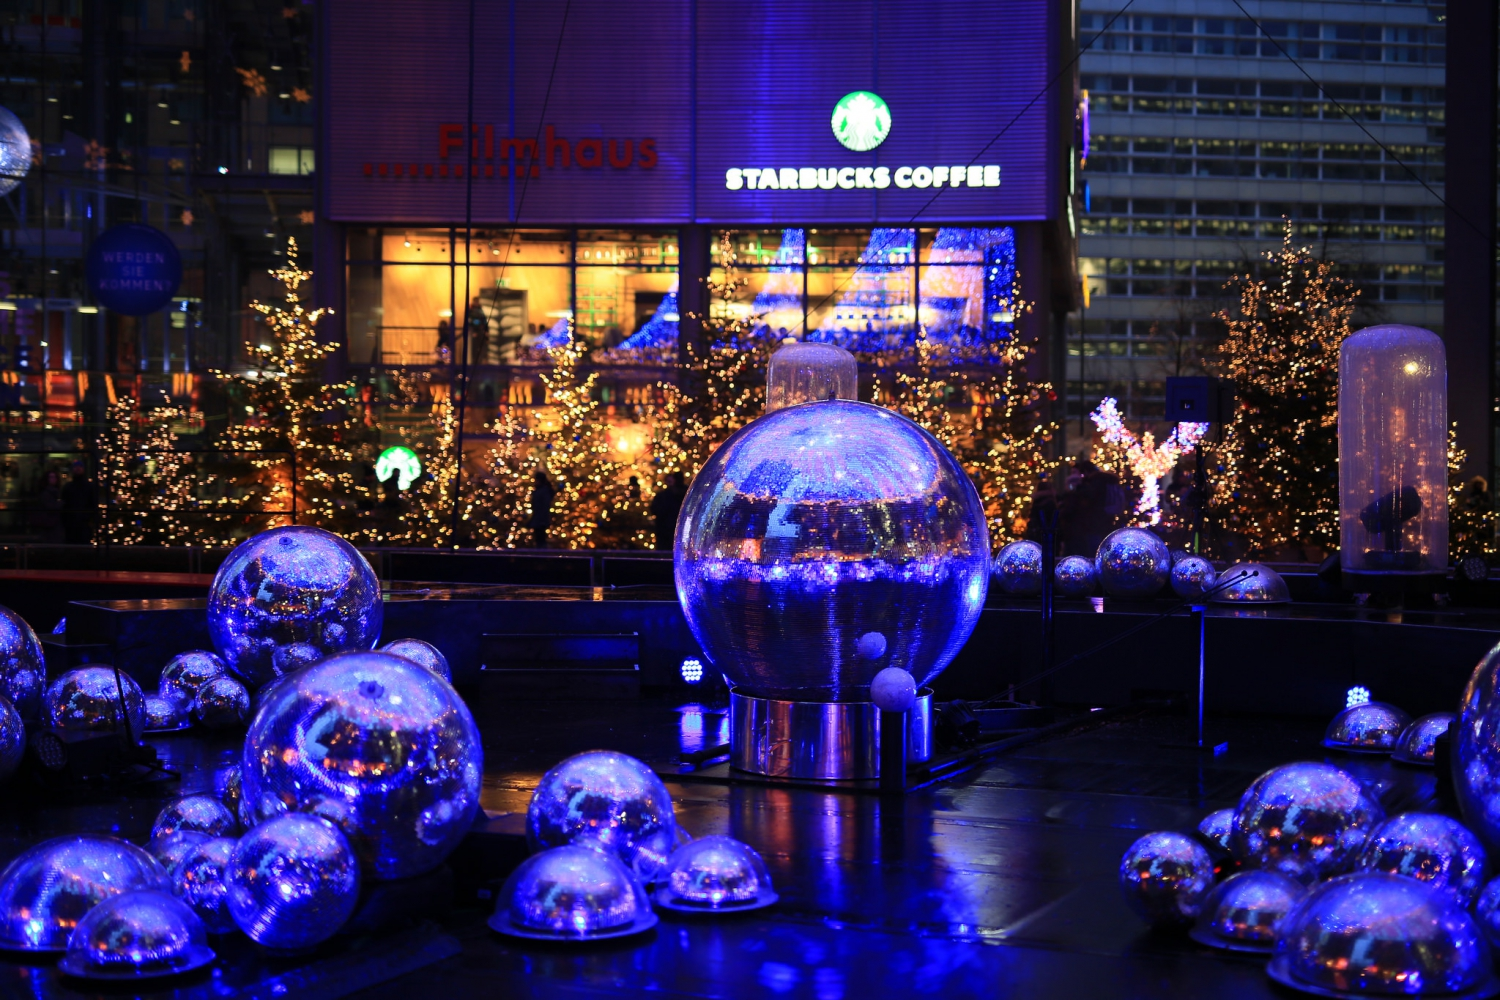 Christmas market at the Sony Center